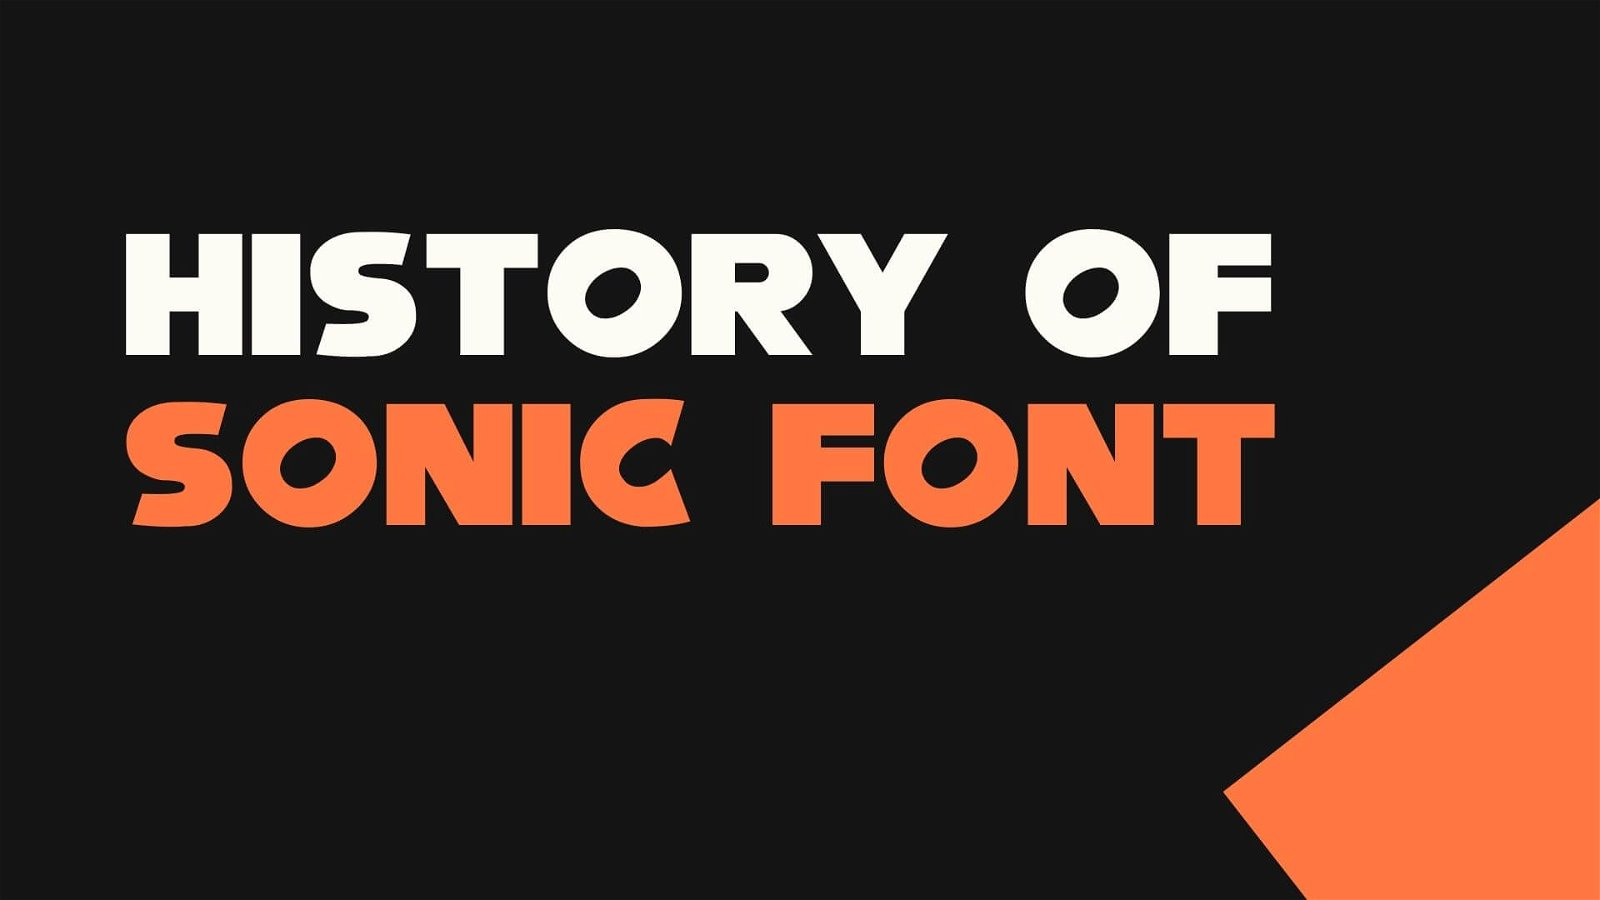 History of Sonic Font